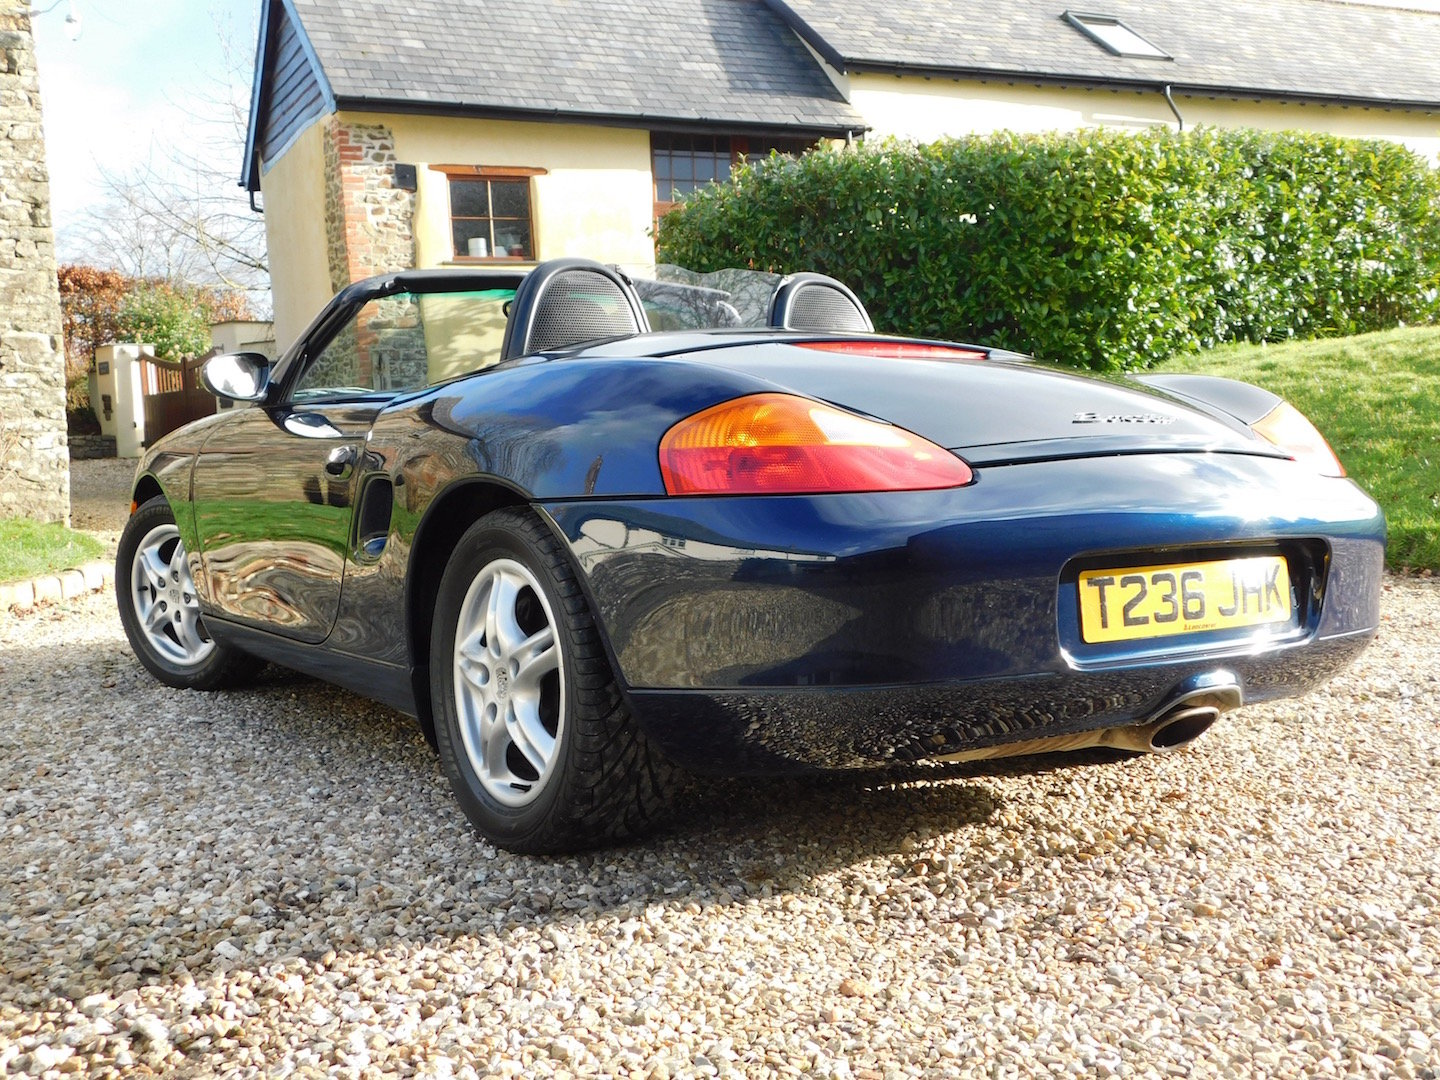 1999 Porsche 986 Boxster 2.5 - 44k miles, excellent throughout For Sale (picture 3 of 6)